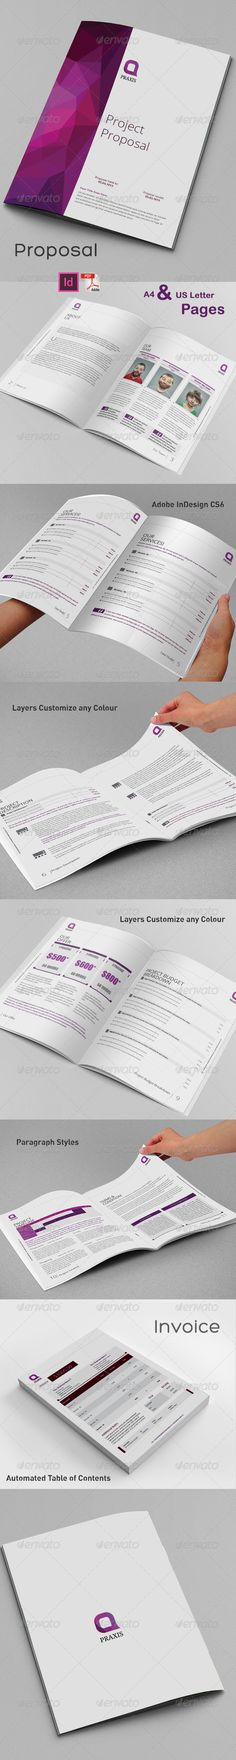 Project Proposal Template Proposal templates, Project proposal - best proposal templates